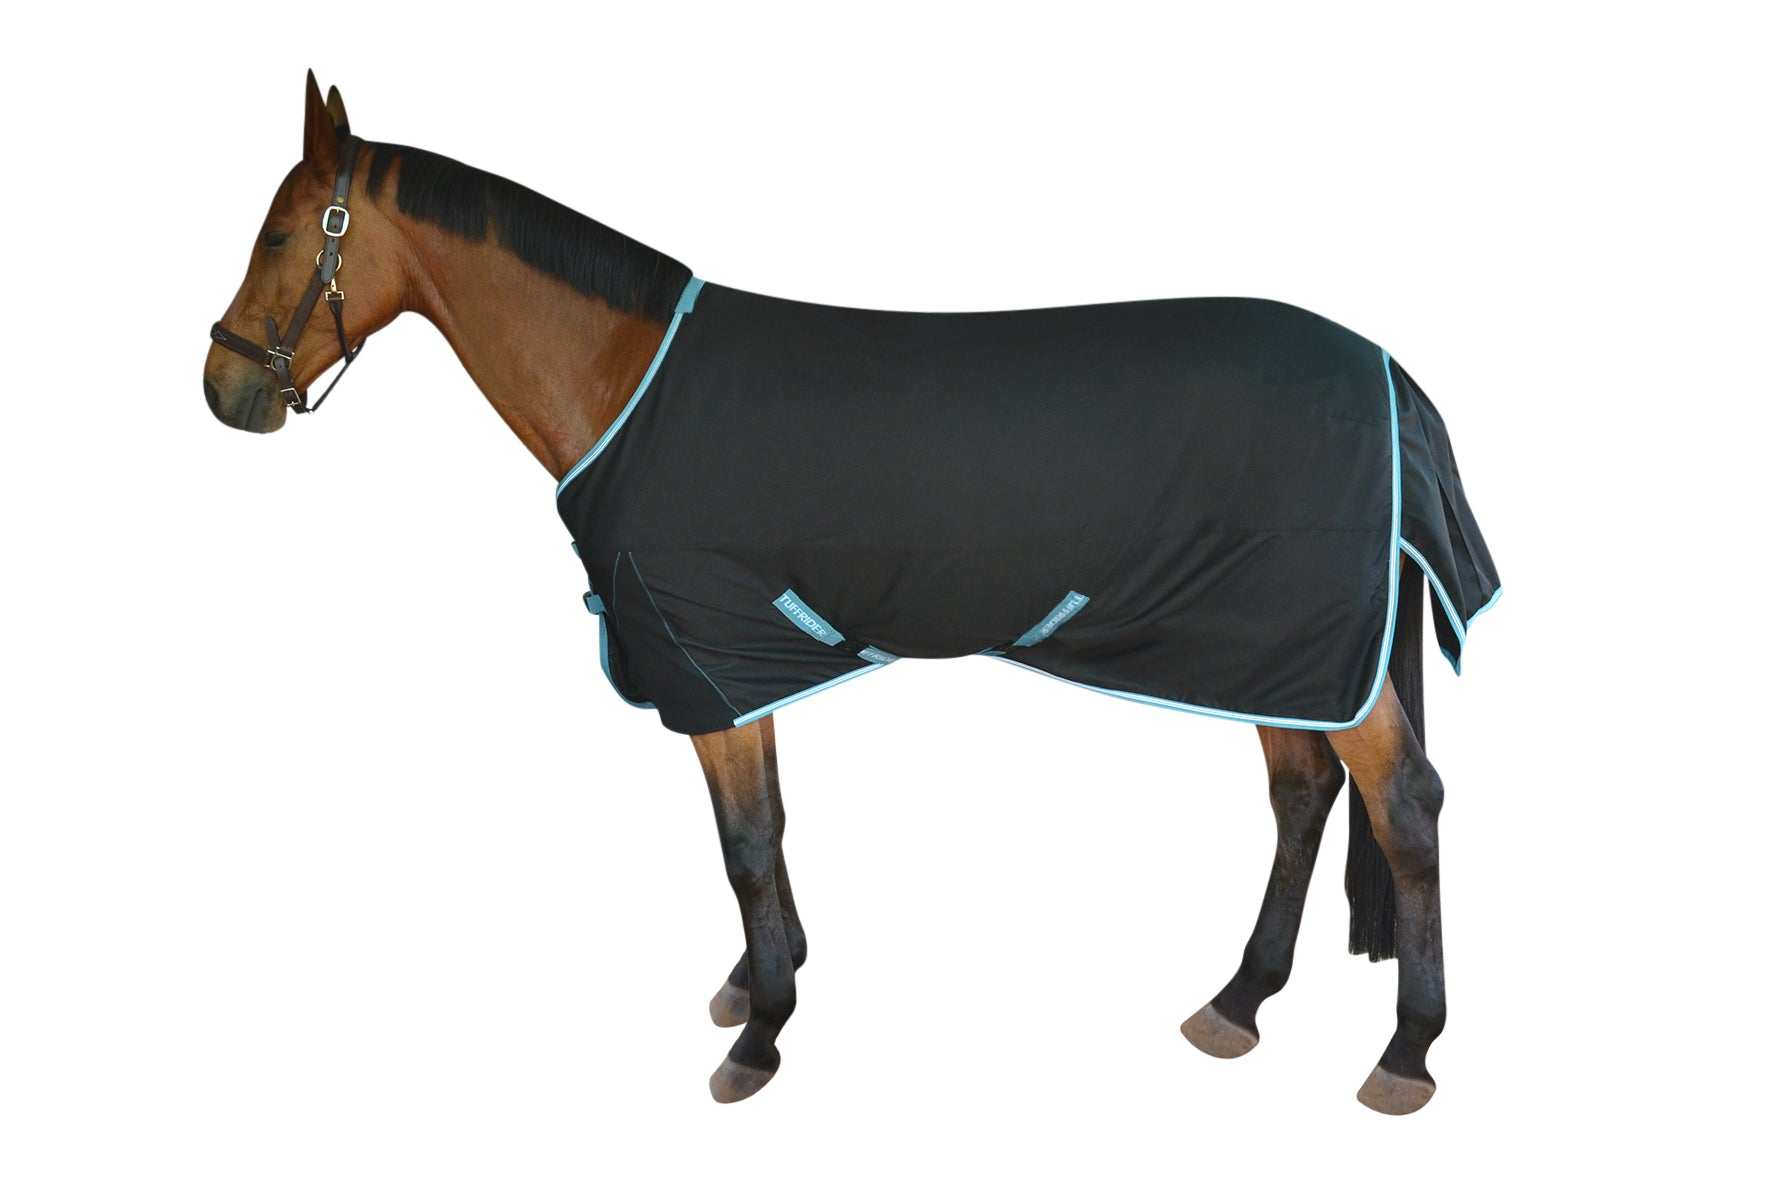 Bonum 1200D Ripstop Turnout Sheet with Standard Neck - TuffRider - Breeches.com